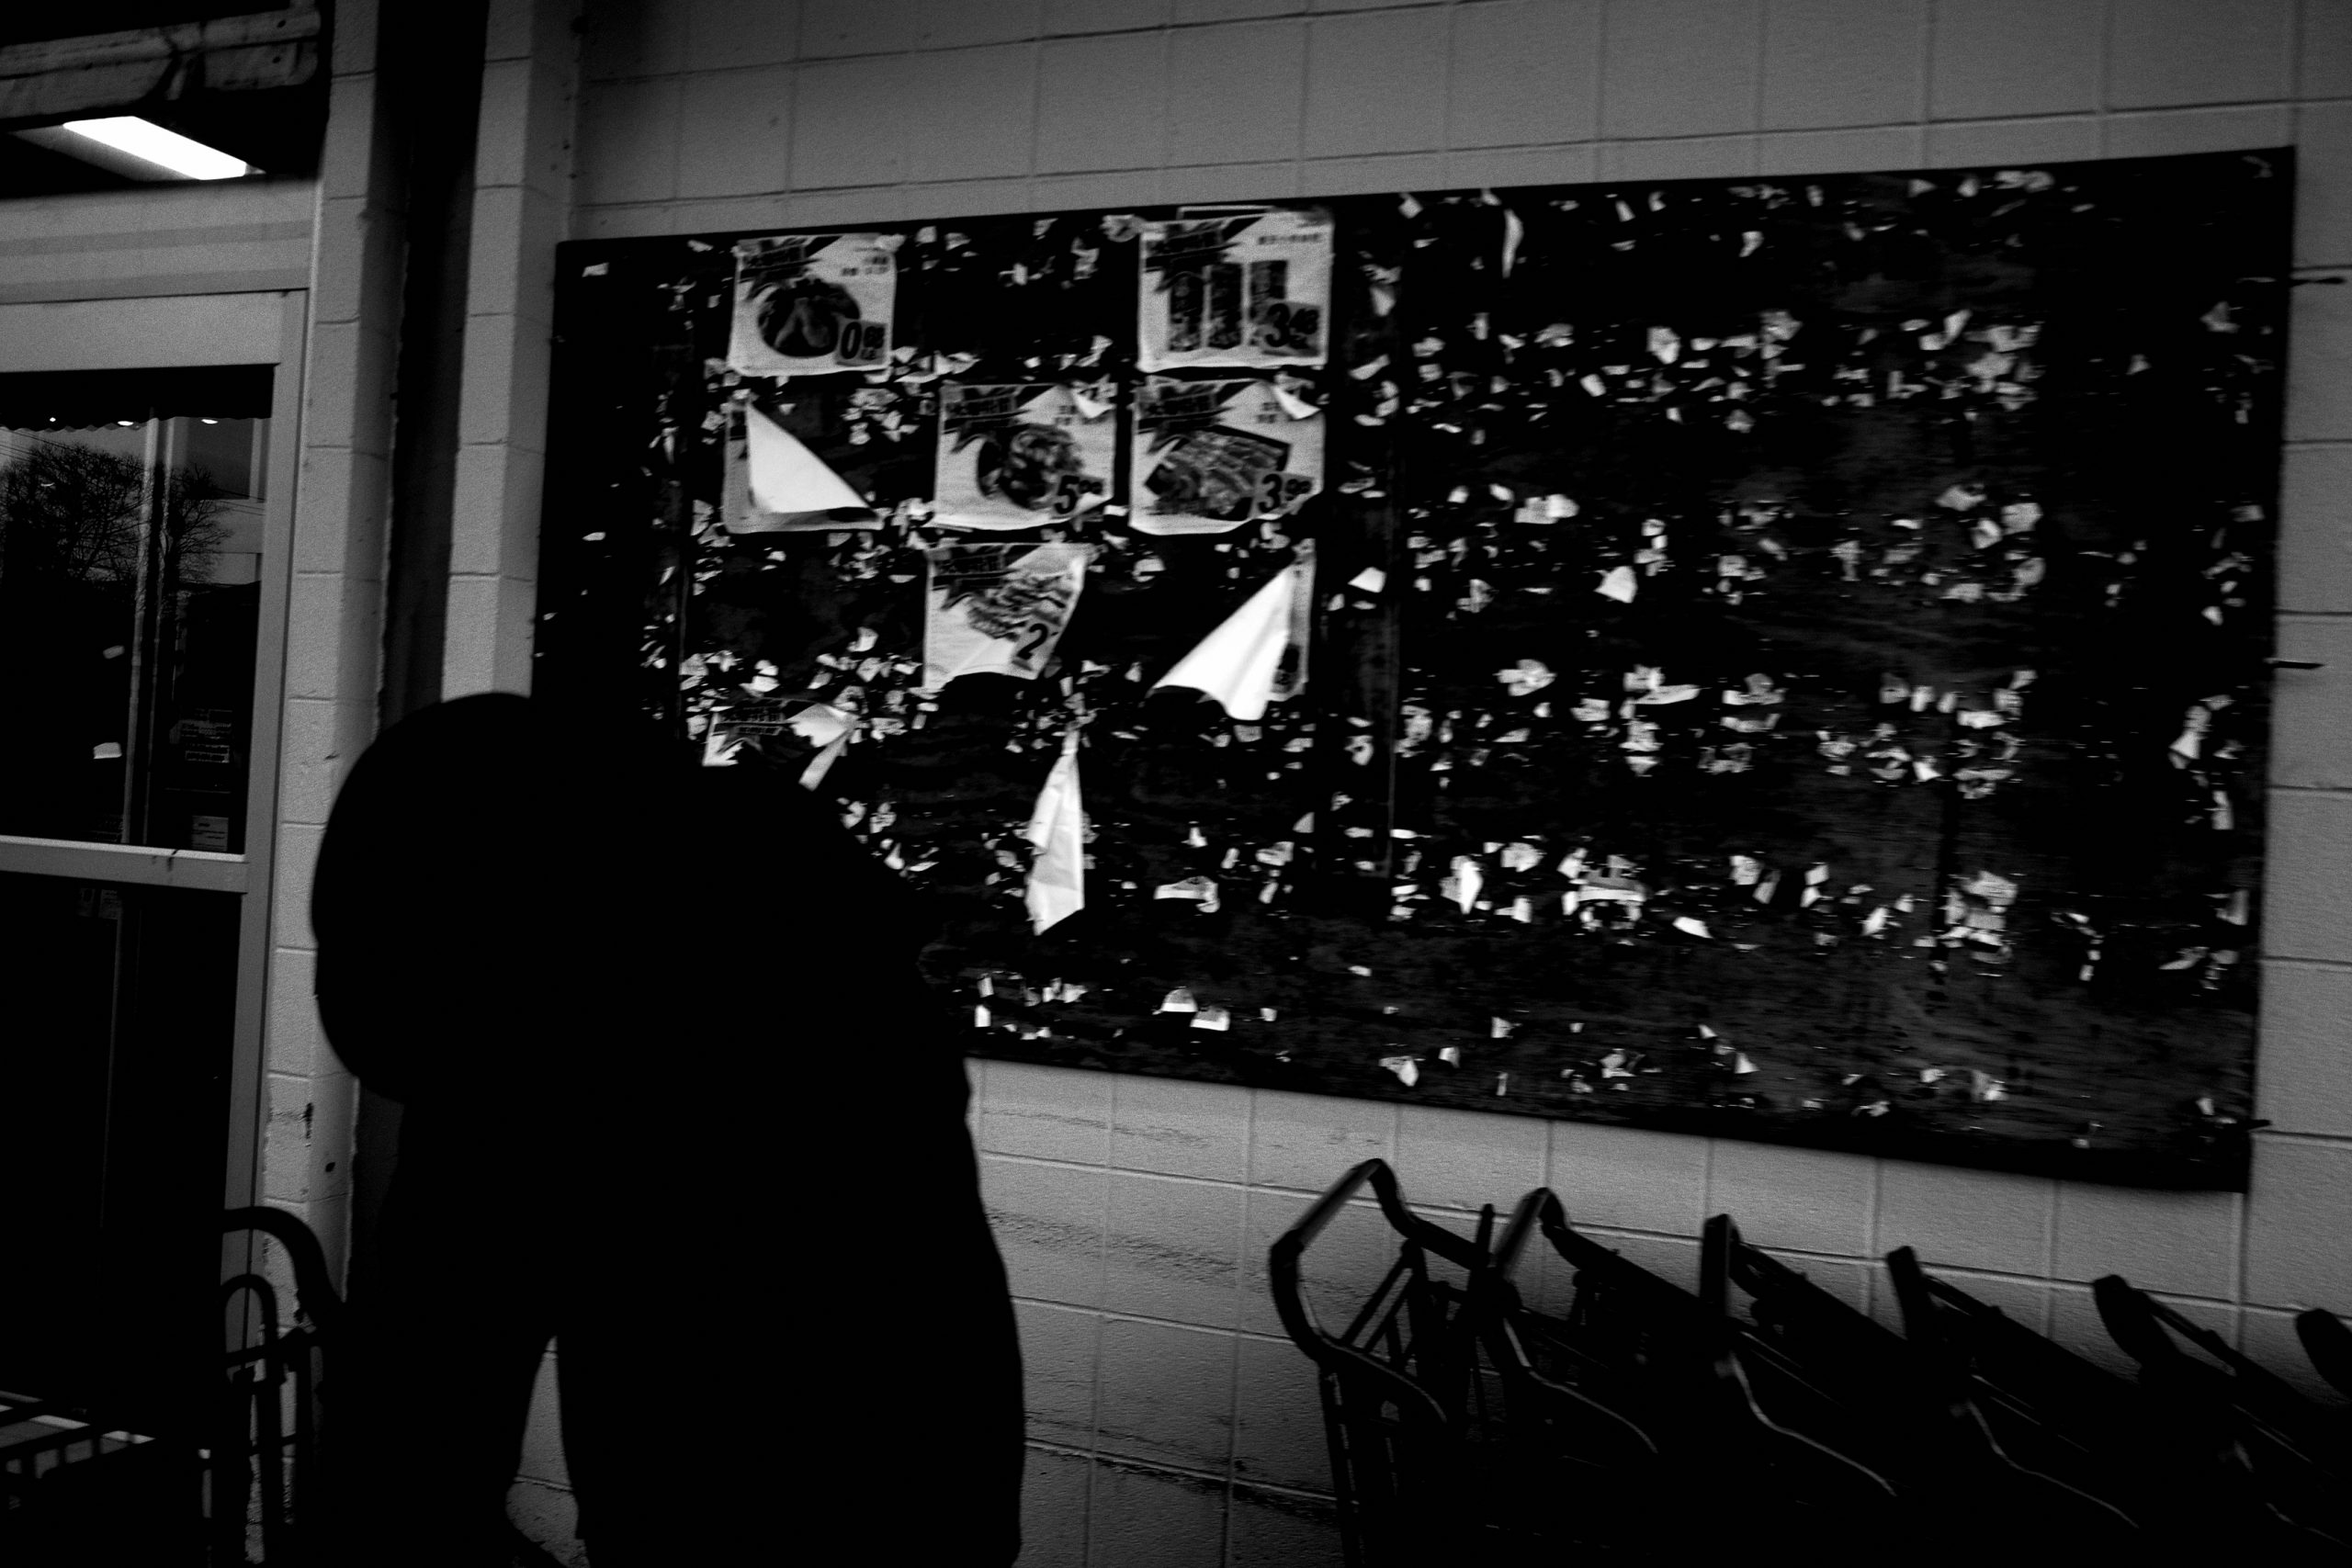 Grocery store street photography silhouette ERIC KIM